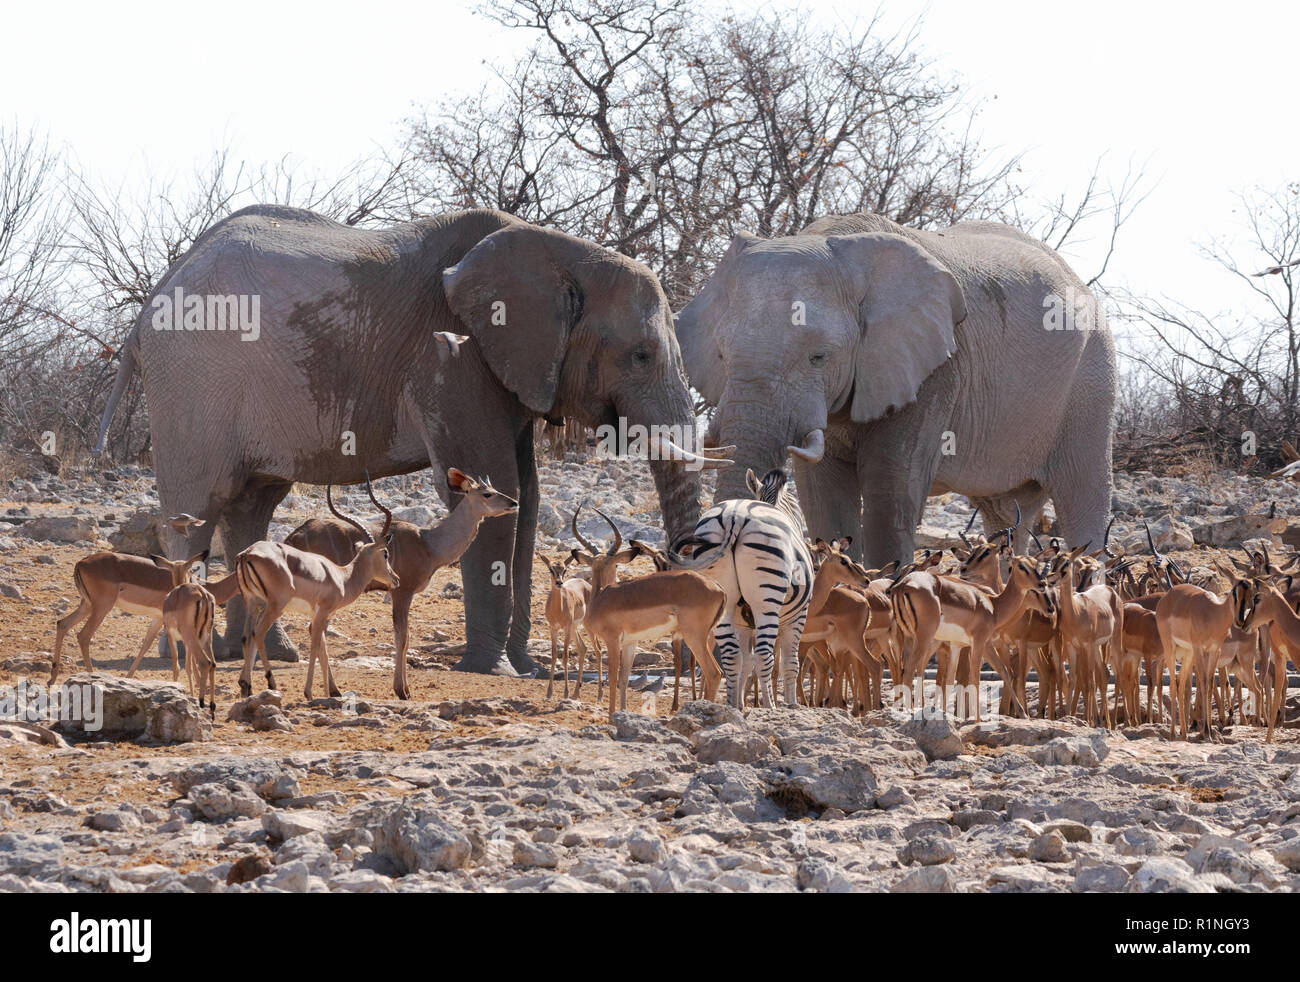 africa-wildlife-a-pair-of-adult-african-elephant-holding-court-with-a-variety-of-animals-etosha-national-park-namibia-africa-R1NGY3.jpg